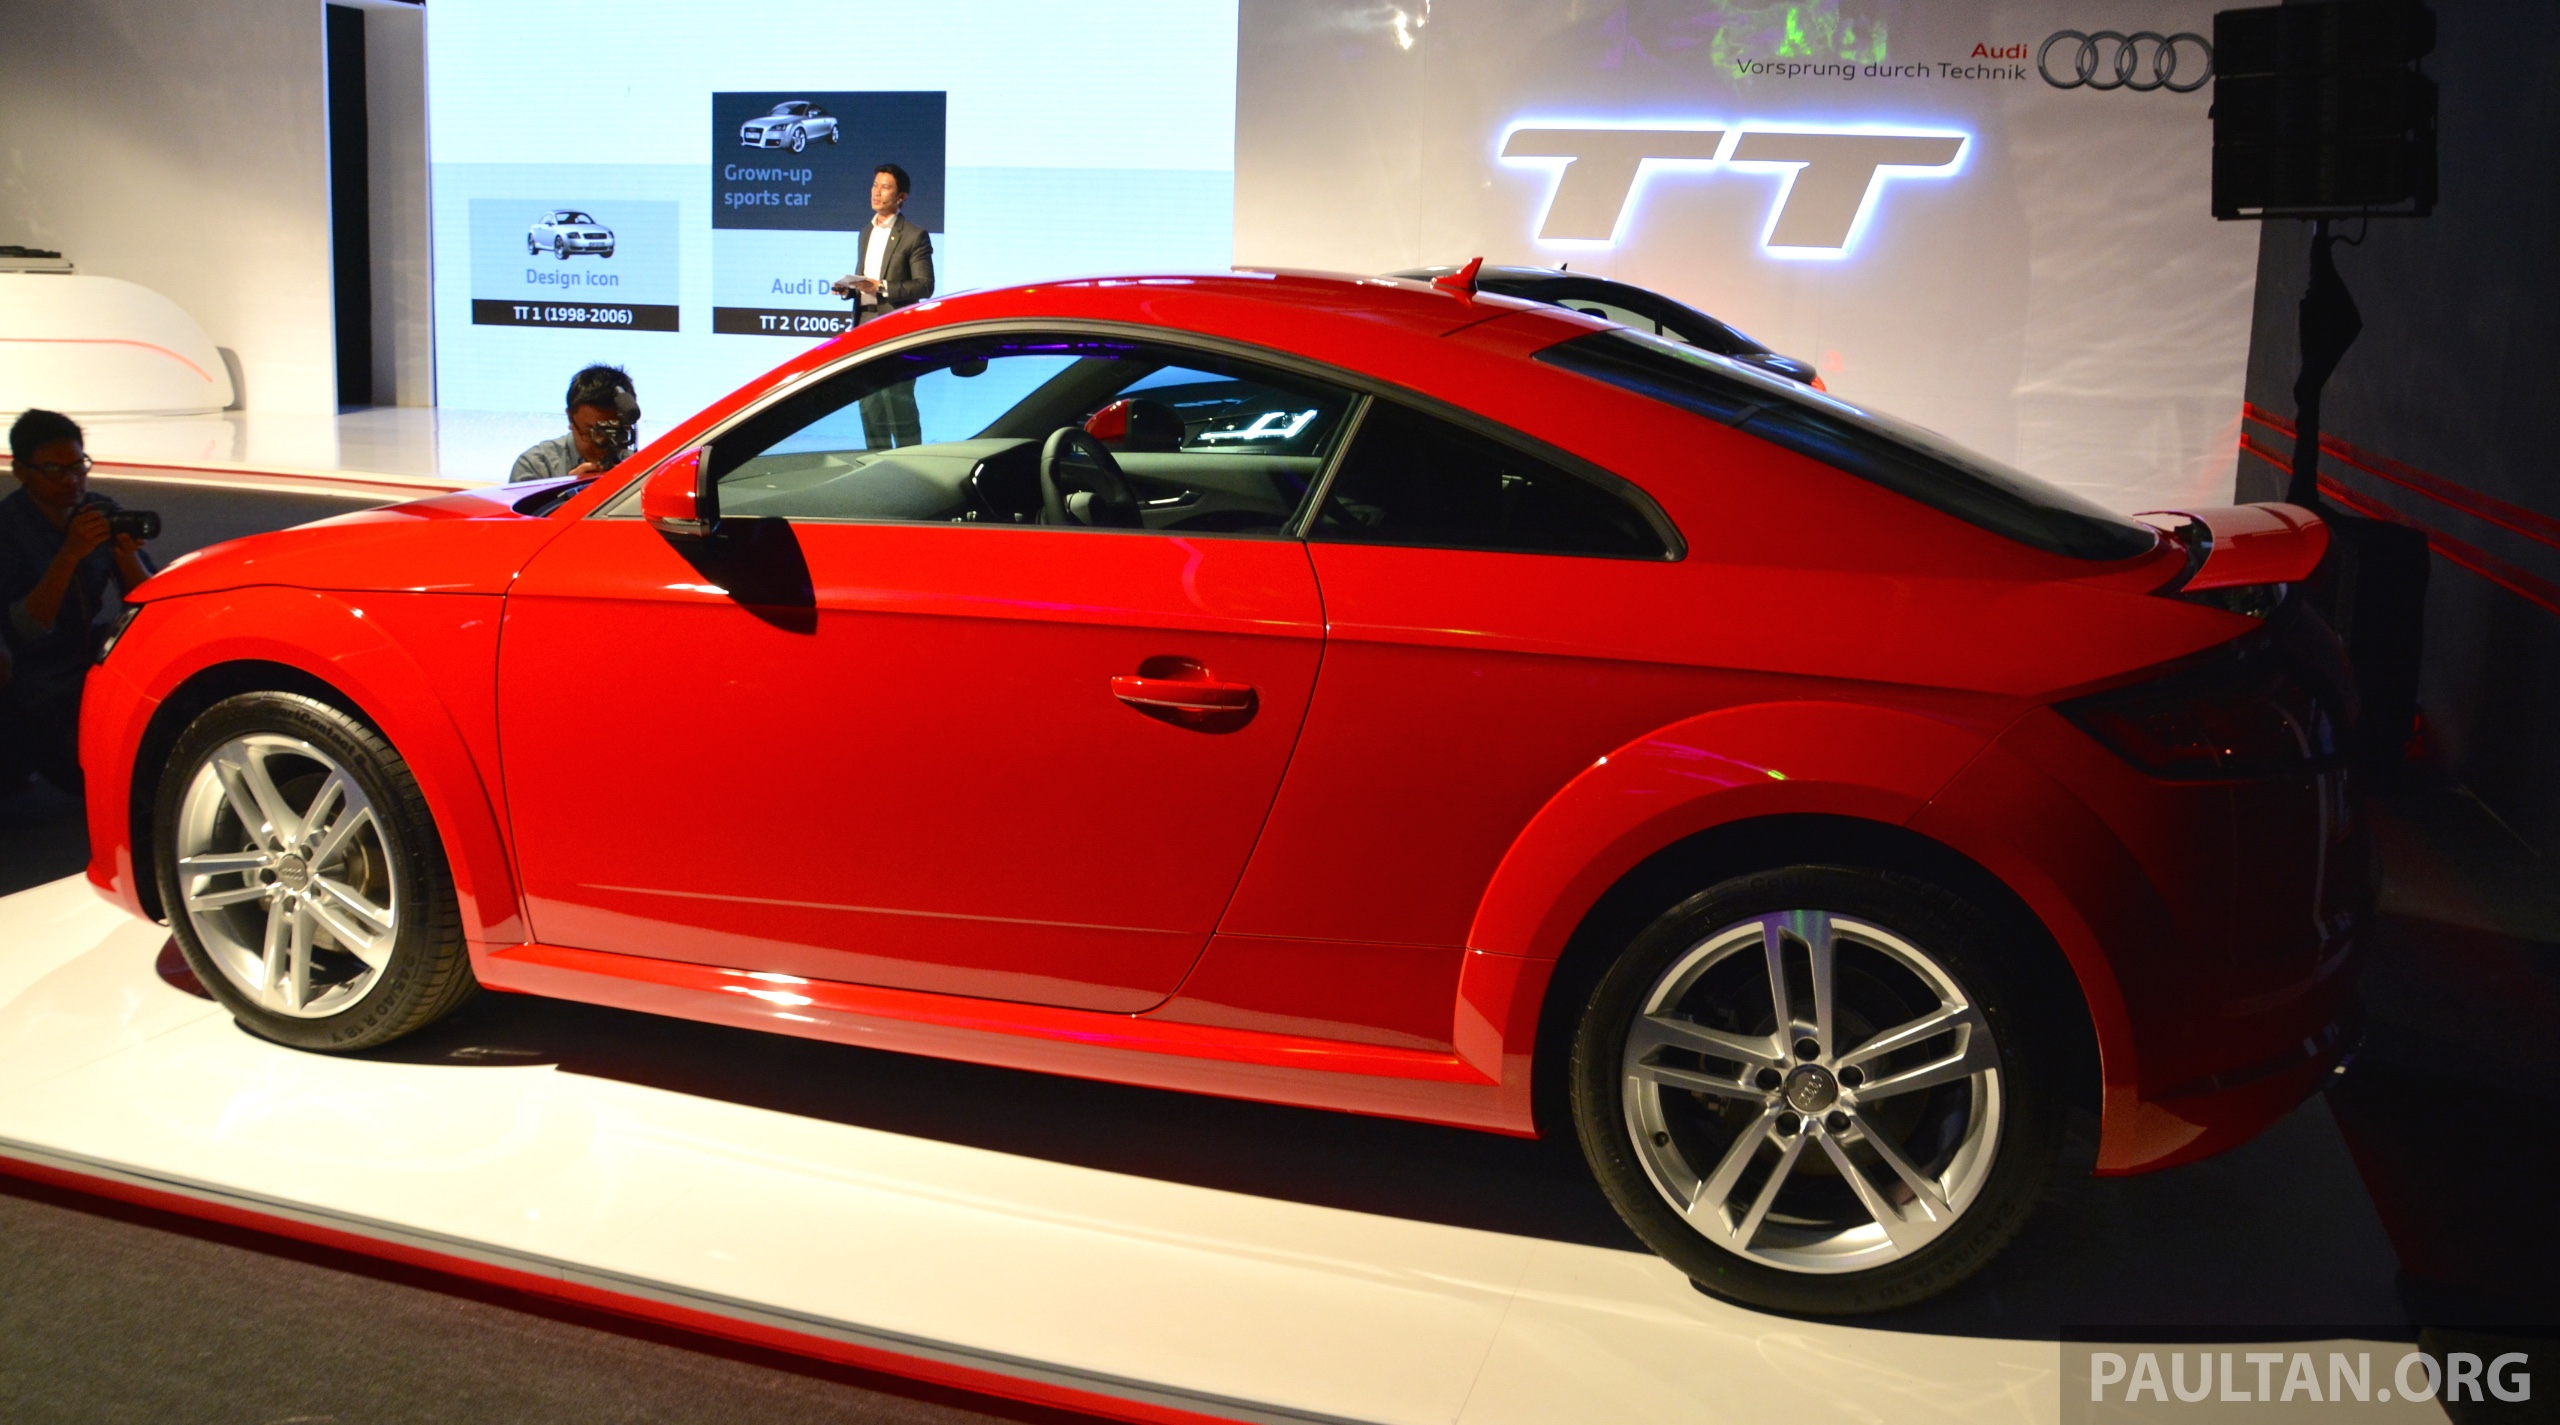 new audi tt launched in malaysia 2 0 tfsi rm285k image 336681. Black Bedroom Furniture Sets. Home Design Ideas